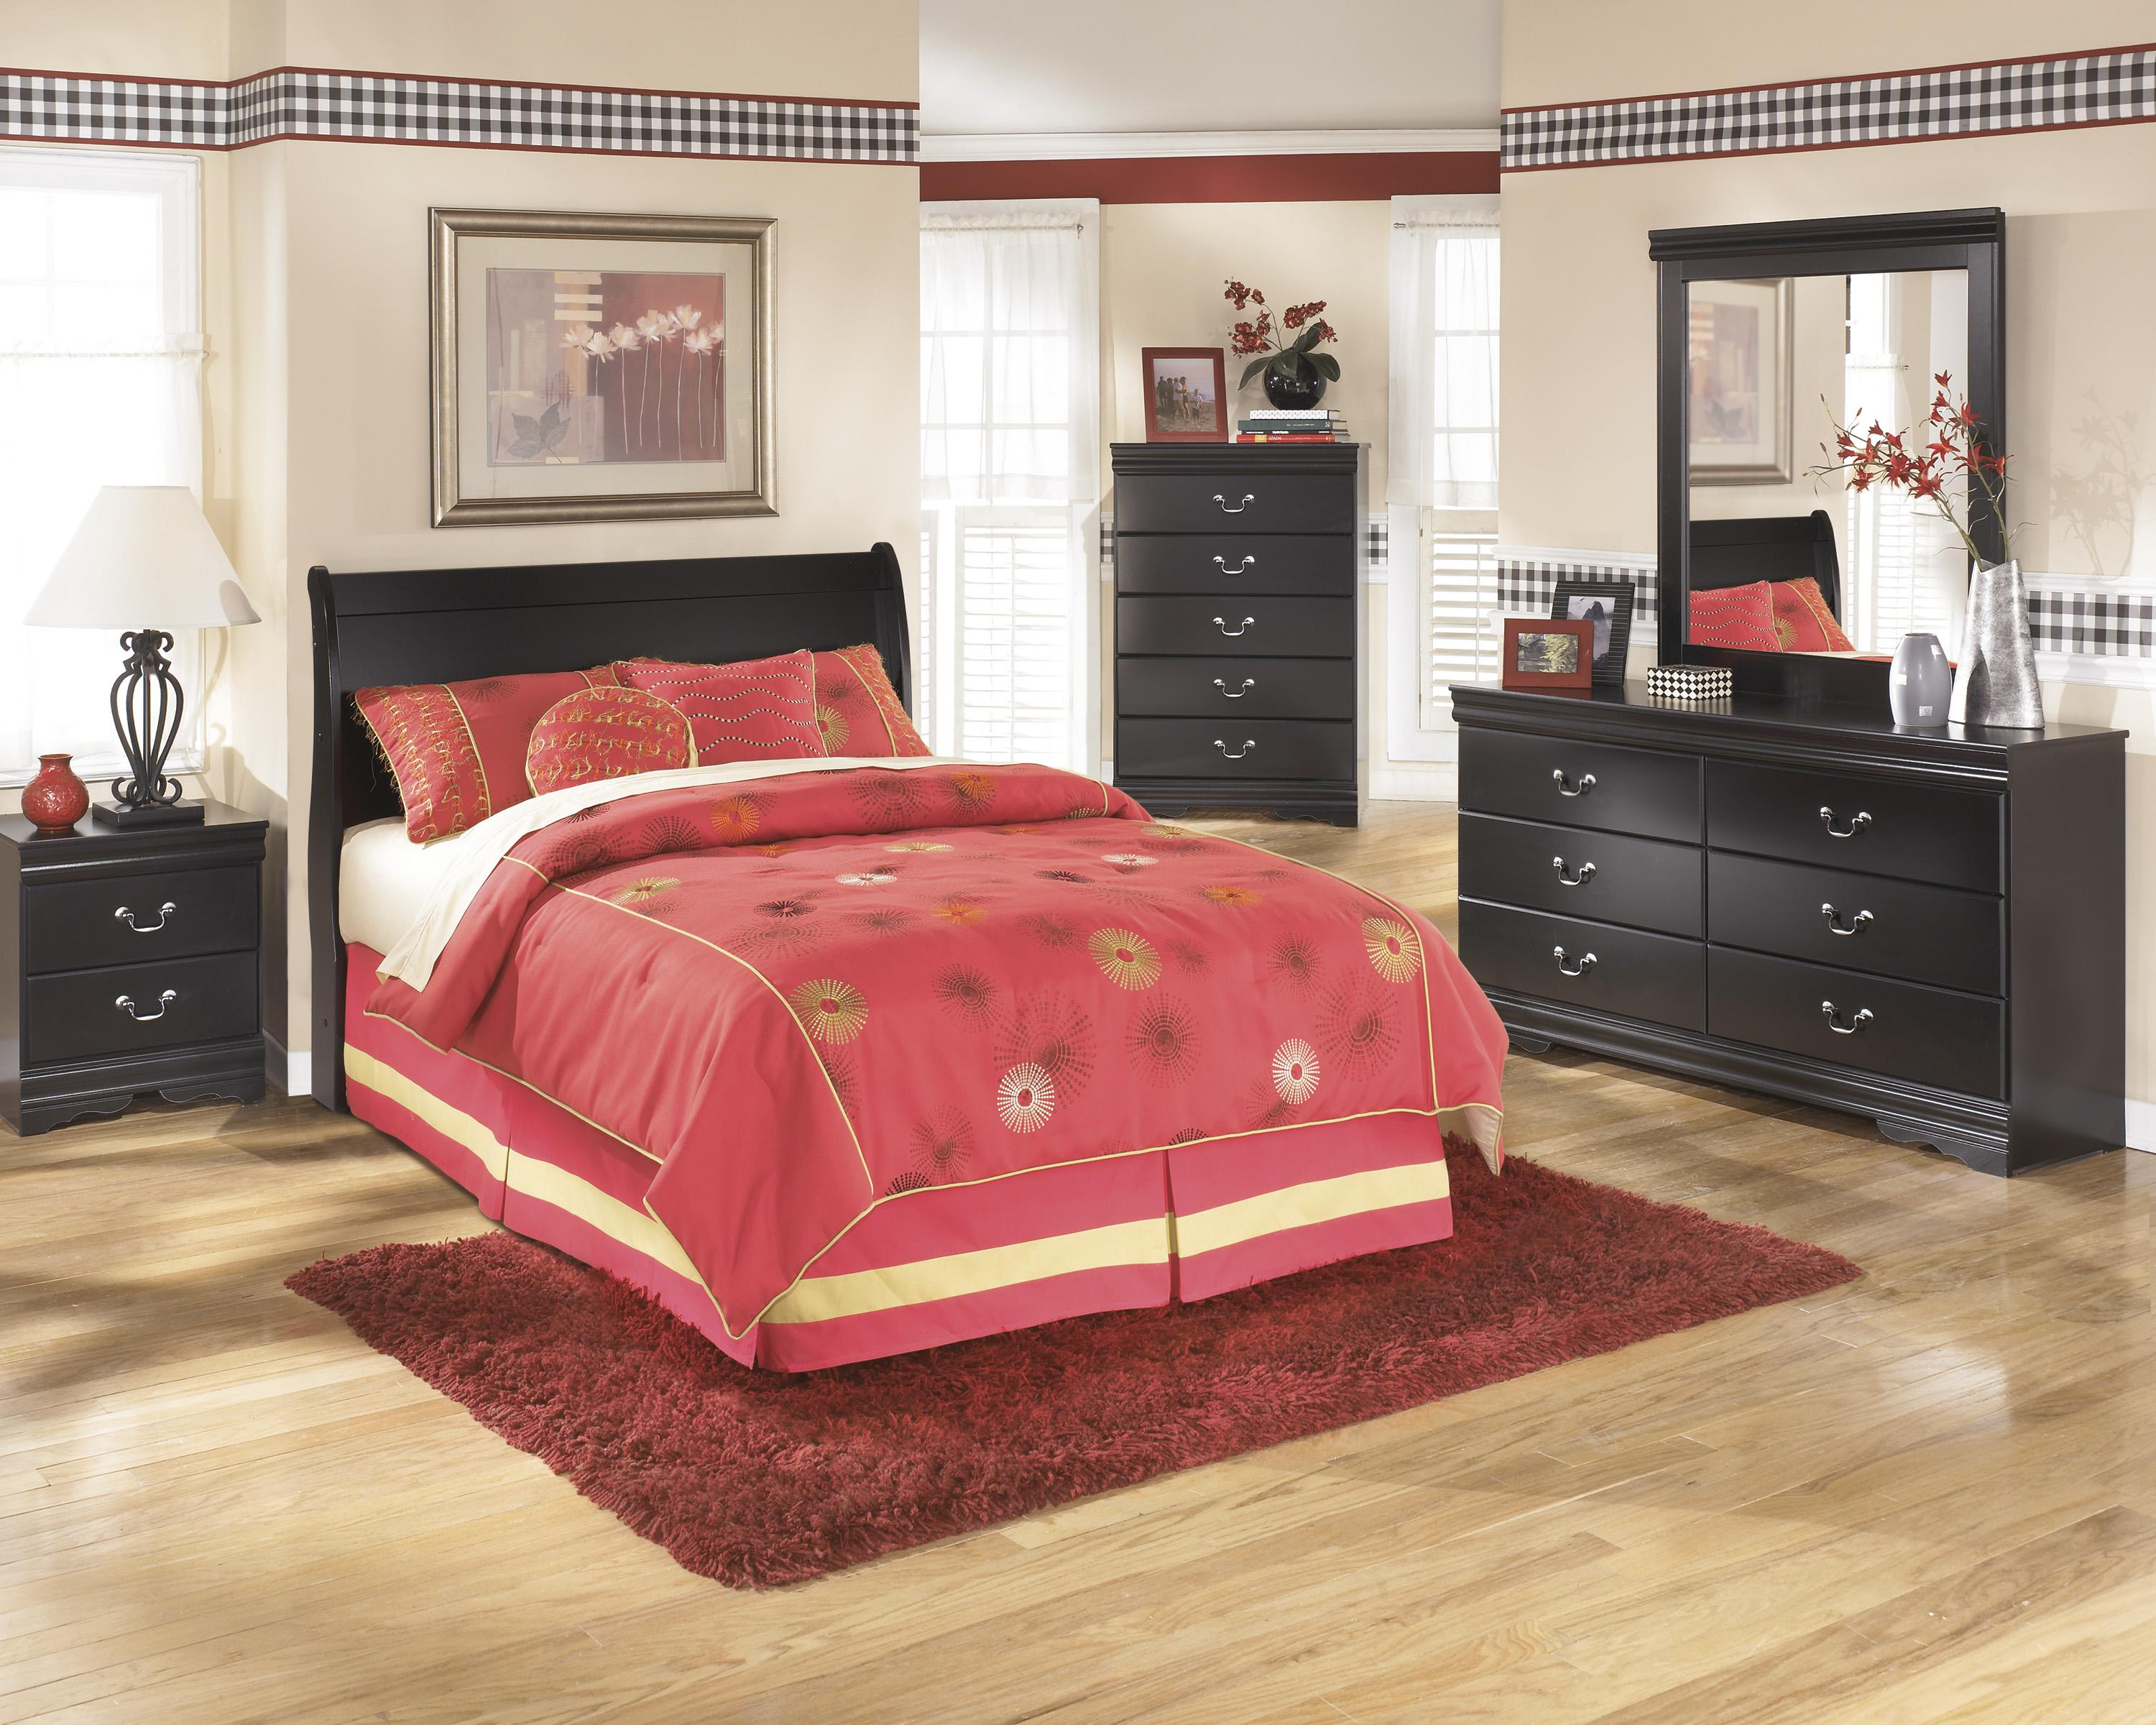 Signature design by ashley huey vineyard full bedroom - Ashley furniture full bedroom sets ...